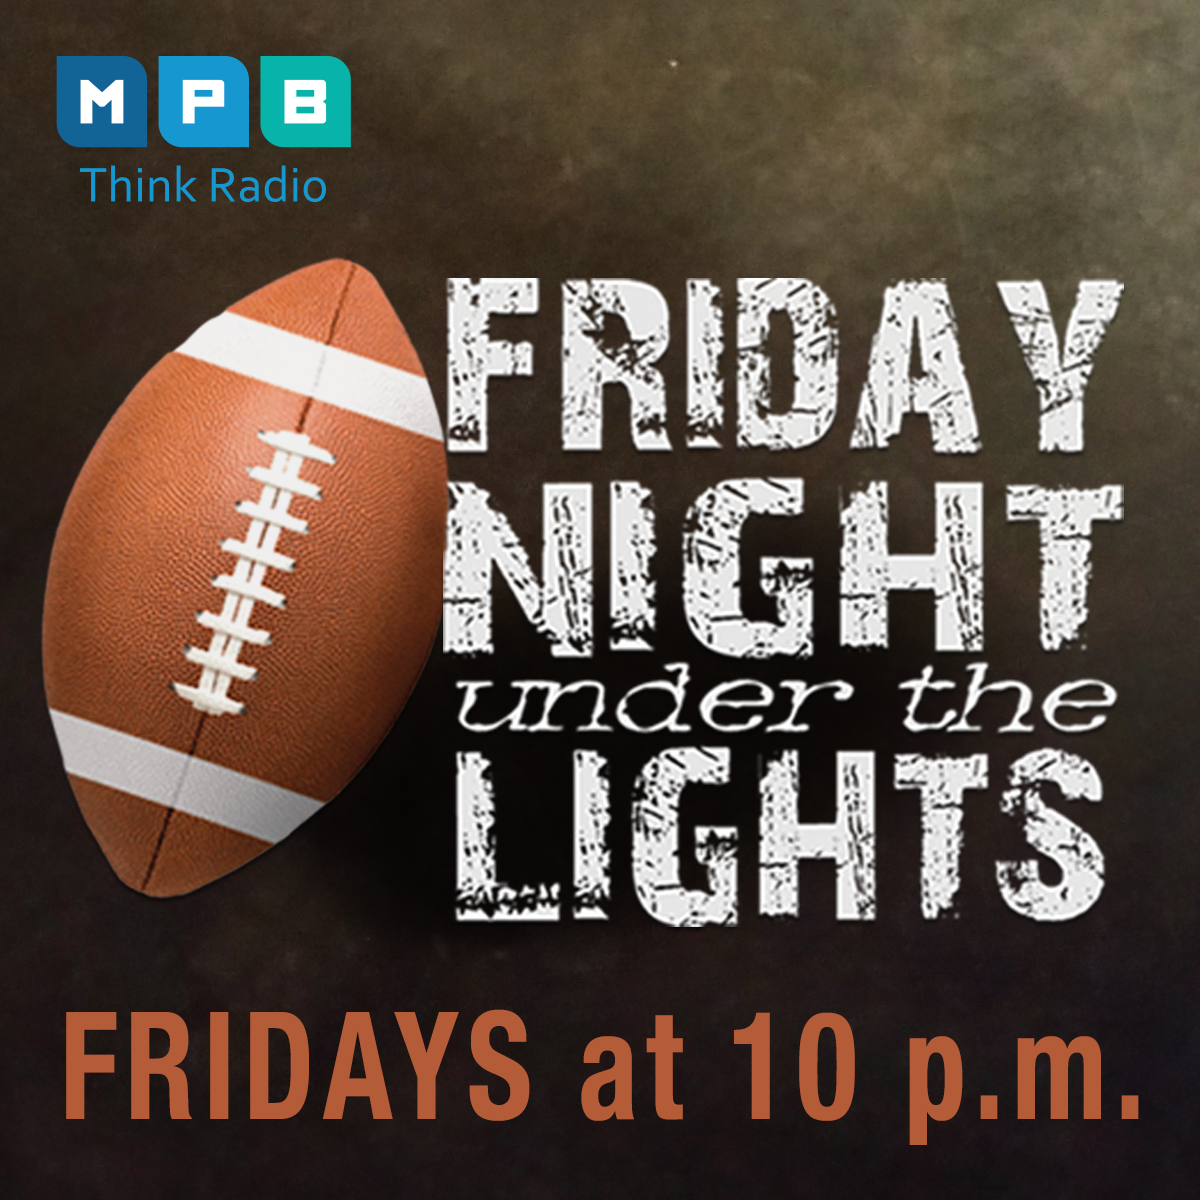 Friday Night Under the Lights returns to MPB Think Radio on Friday nights this fall.